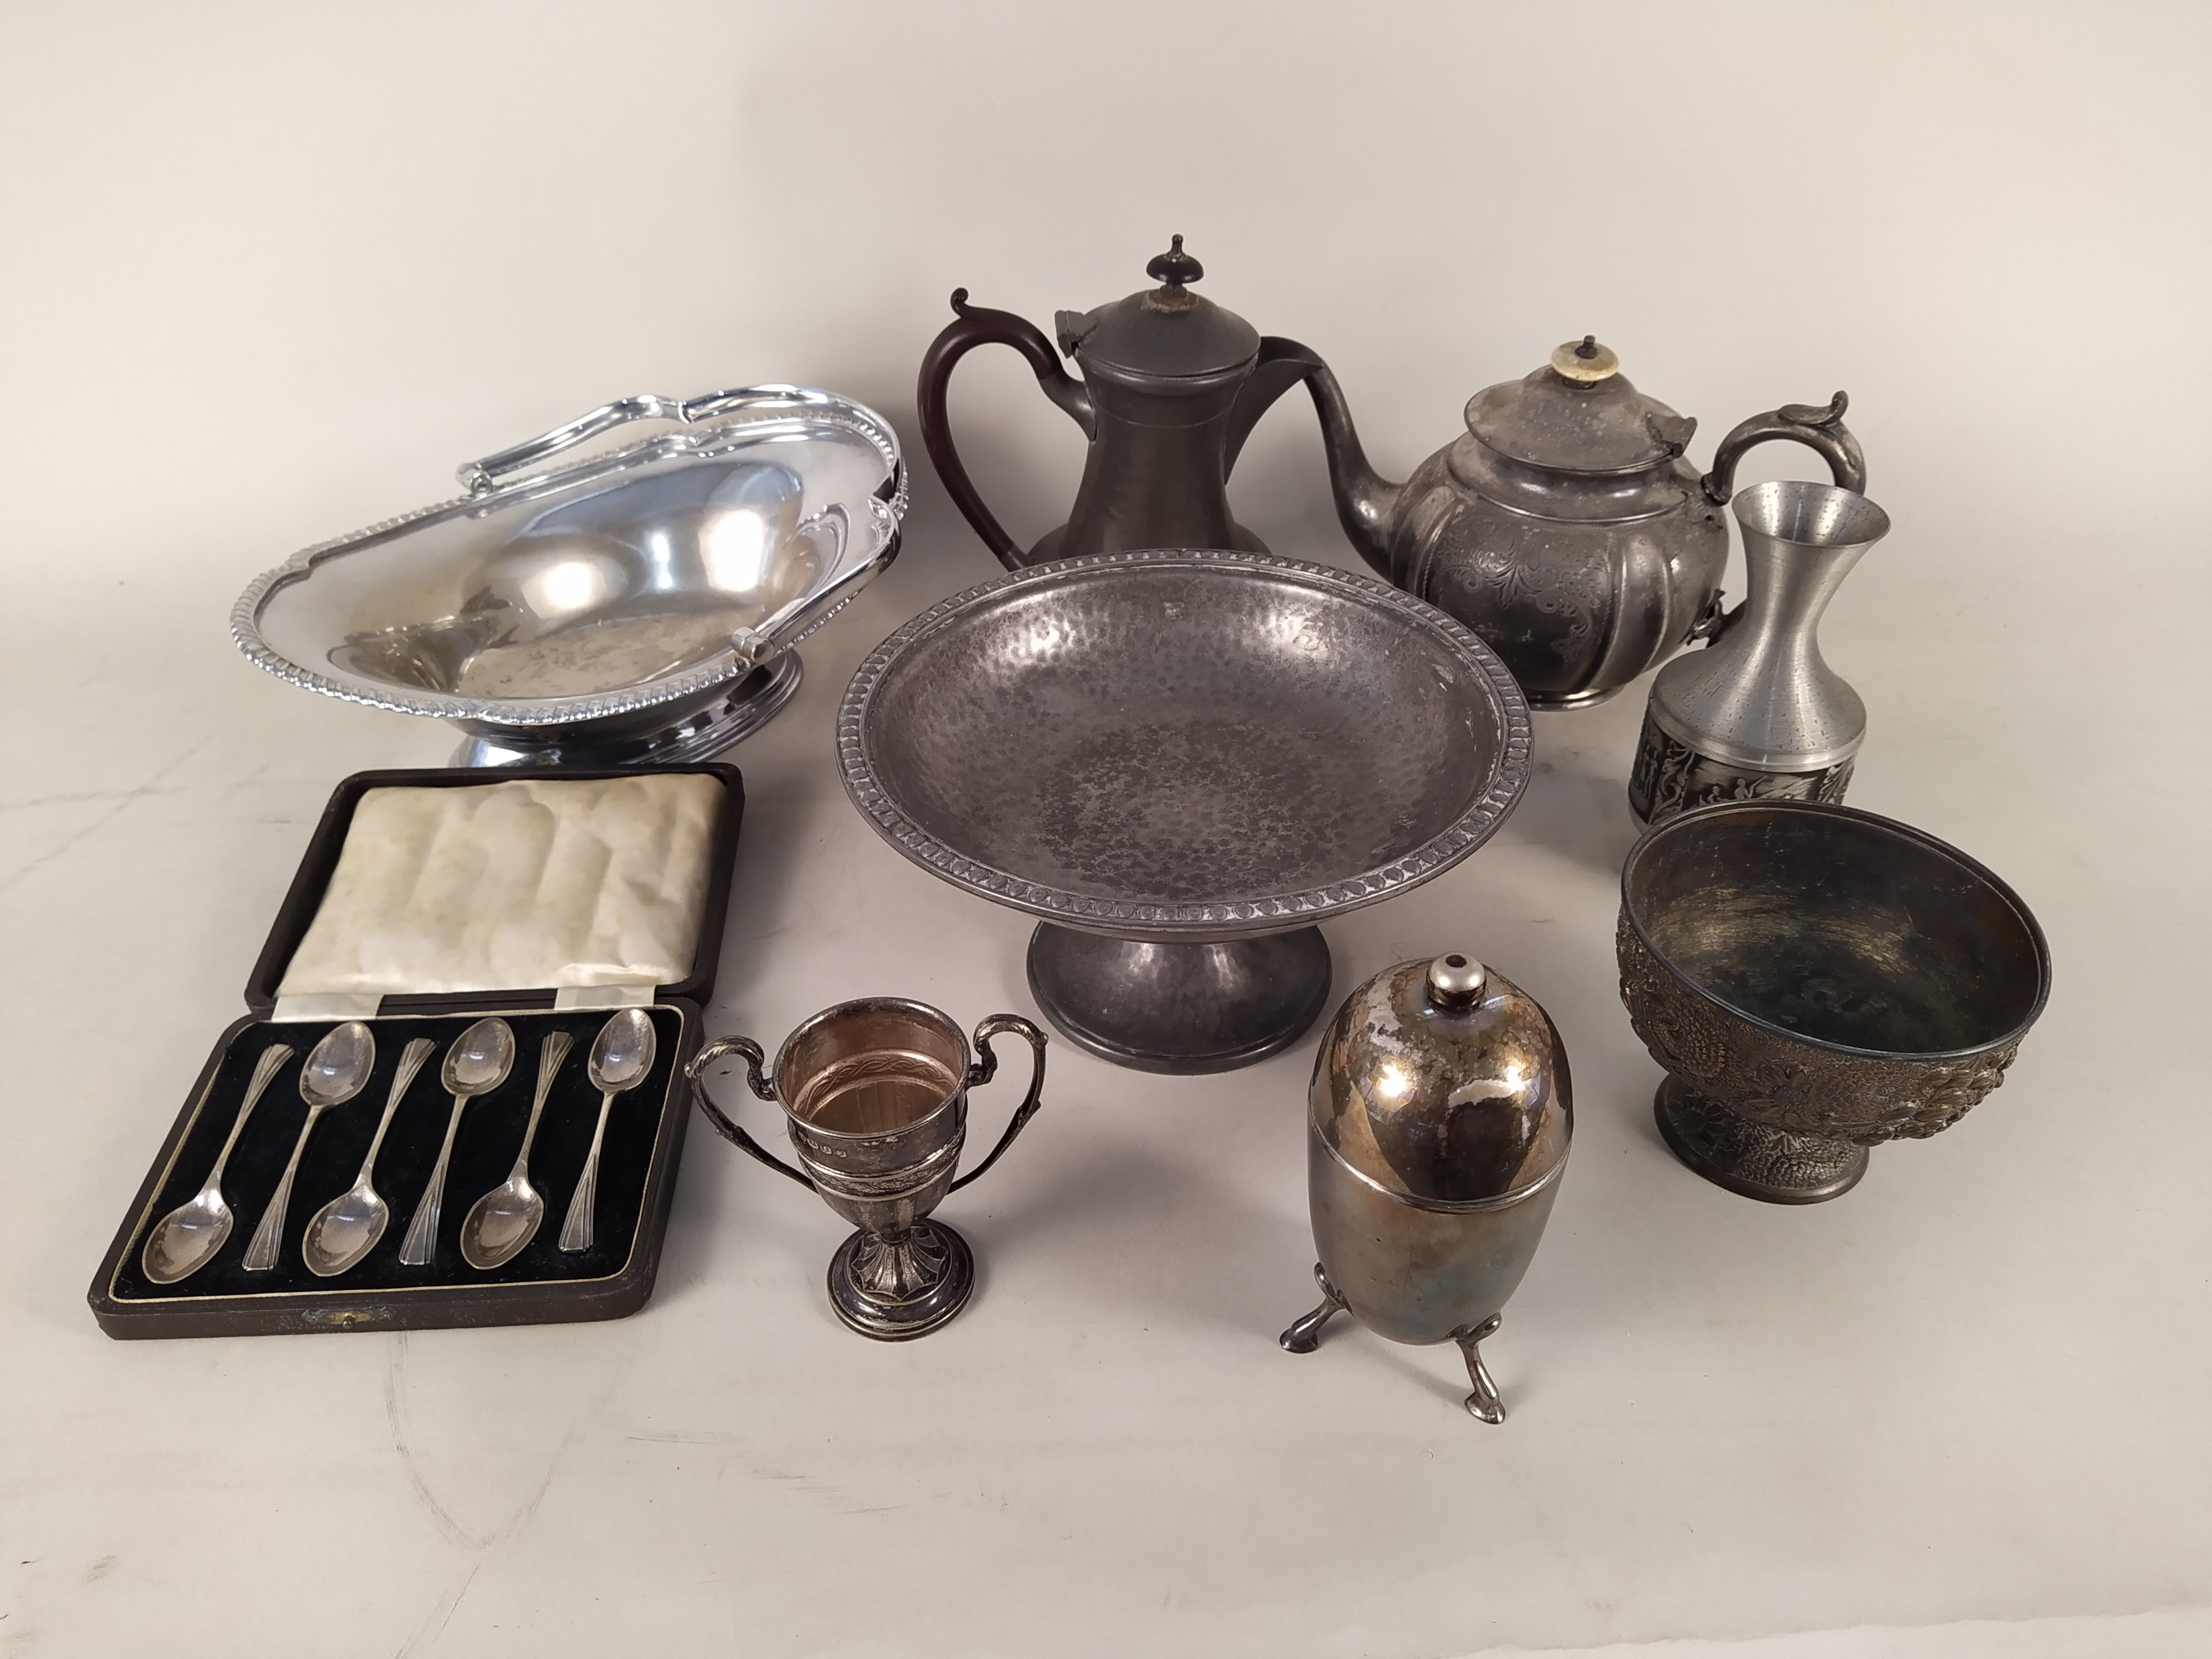 A mixed selection of silver plate and pewter wares